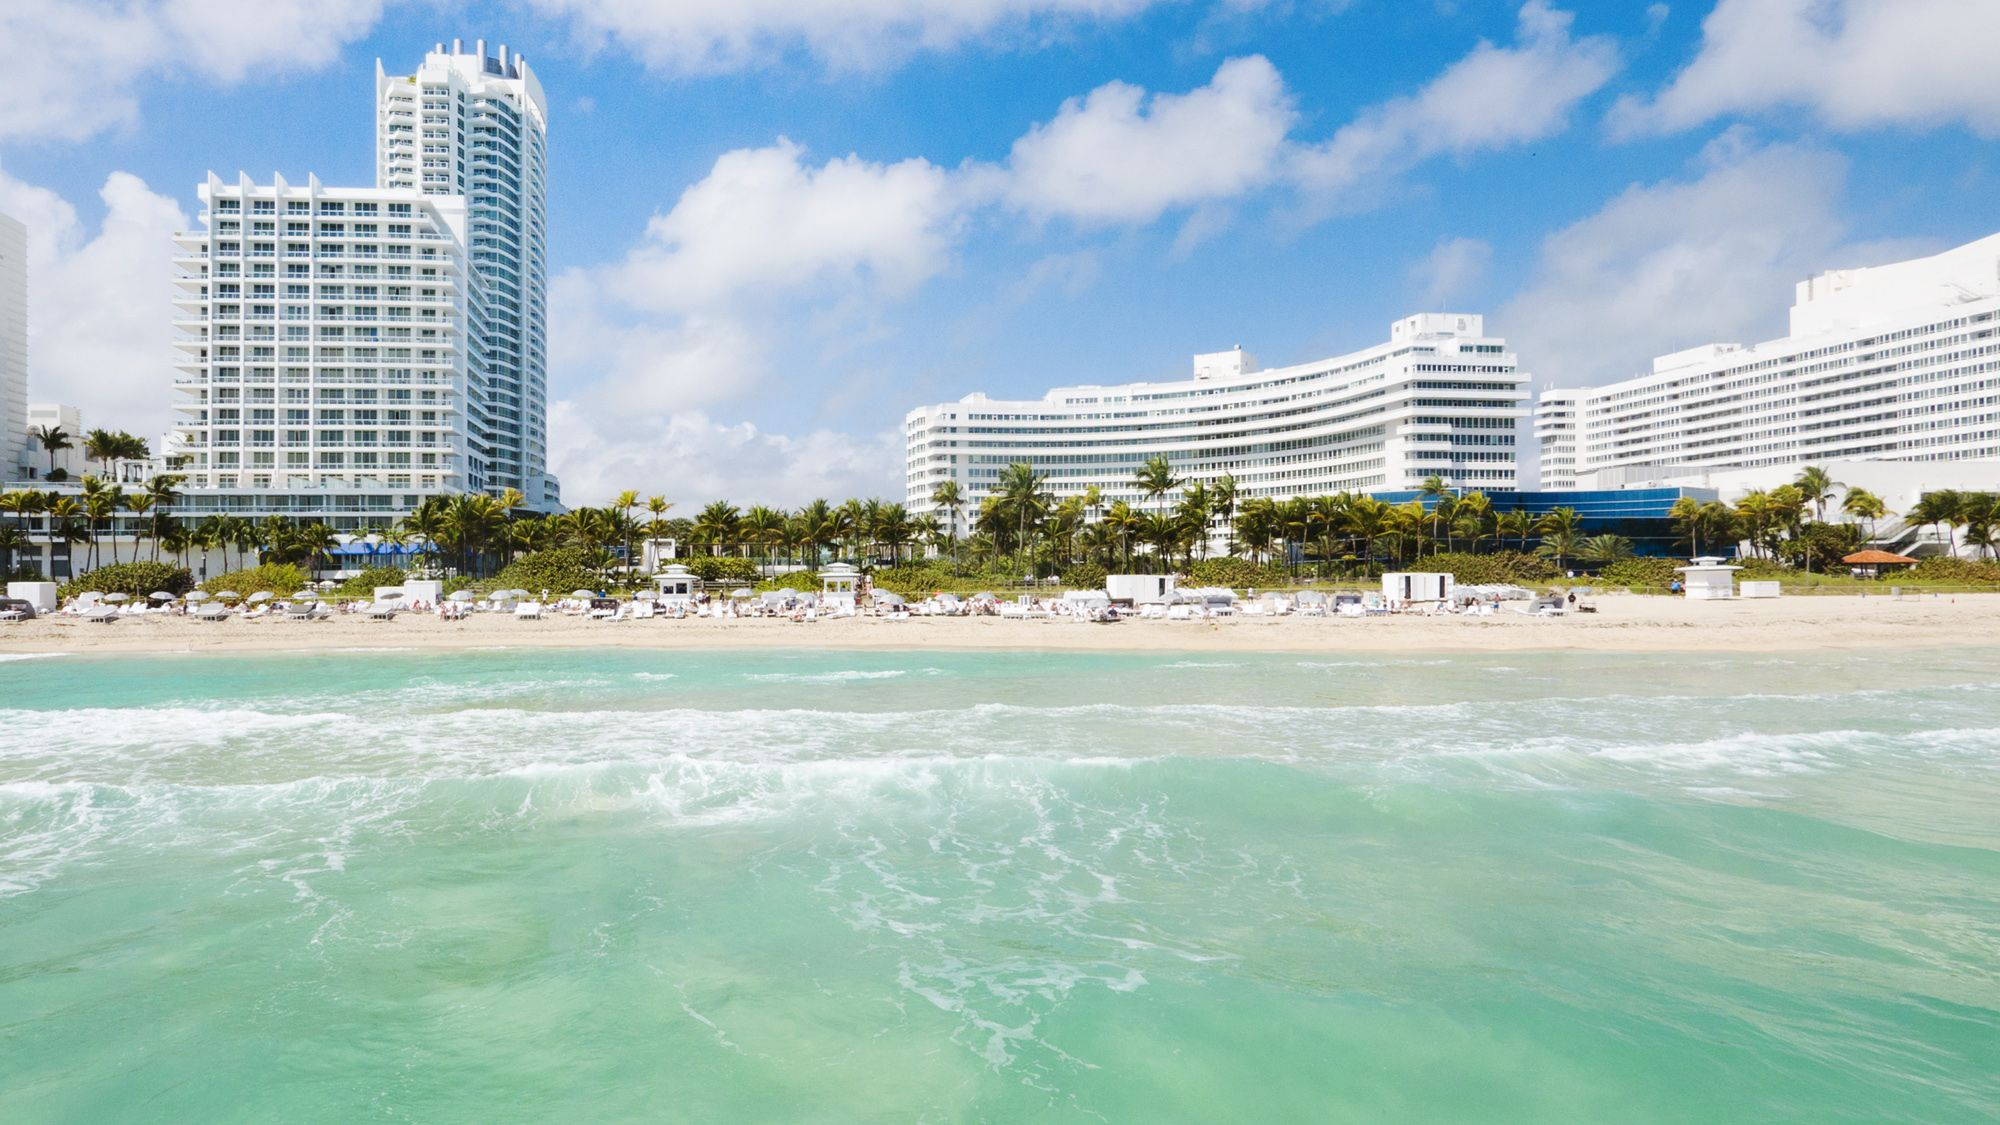 Fontainebleau Miami Beach Is An Iconic Luxury Hotel Ideally Located On Florida The South Features Ious Guest Rooms And